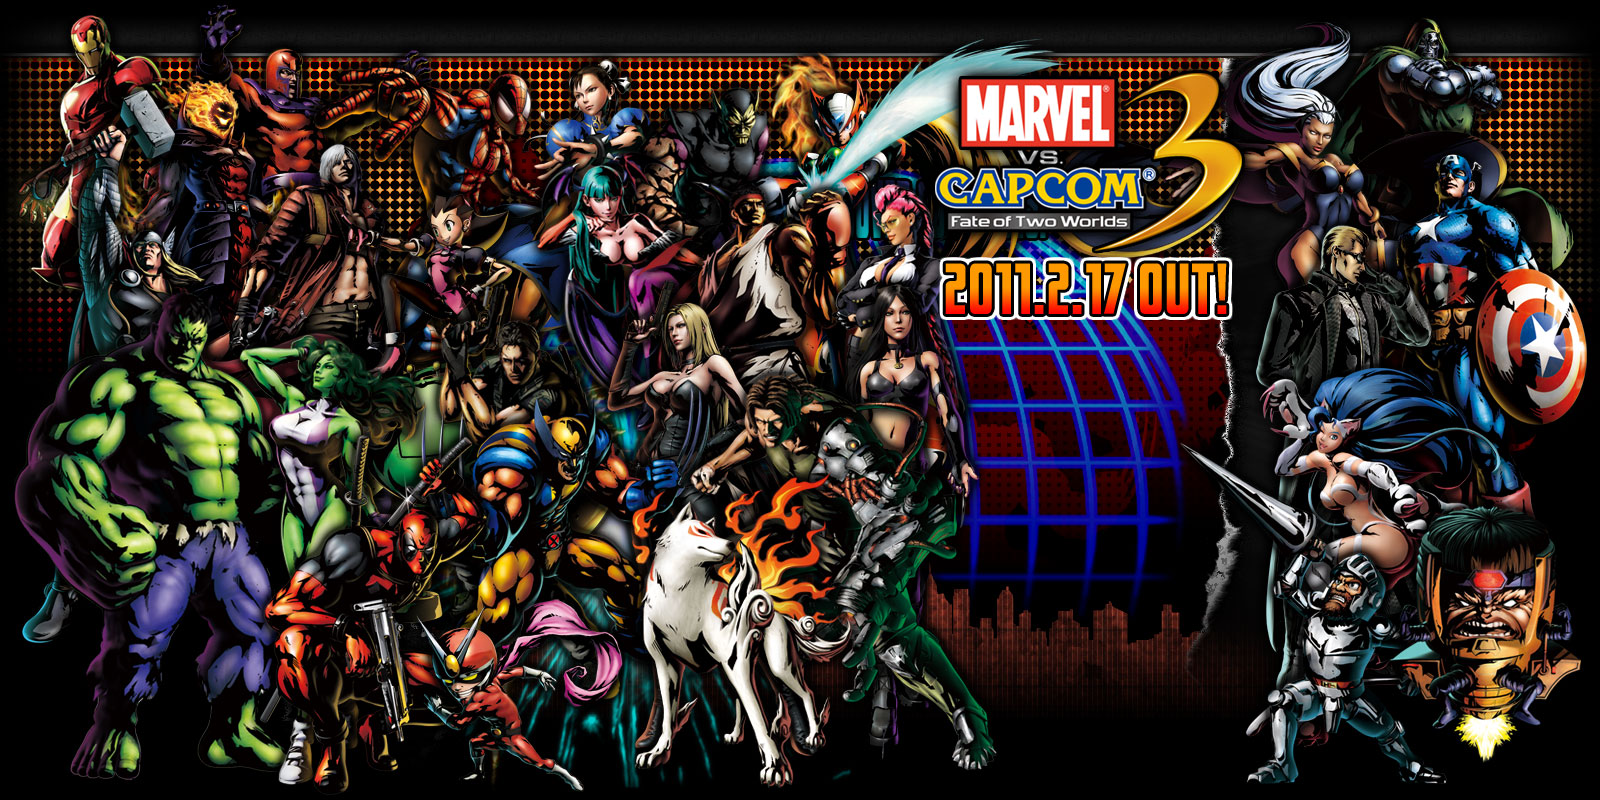 Marvel vs capcom 3 fate of two worlds video game review